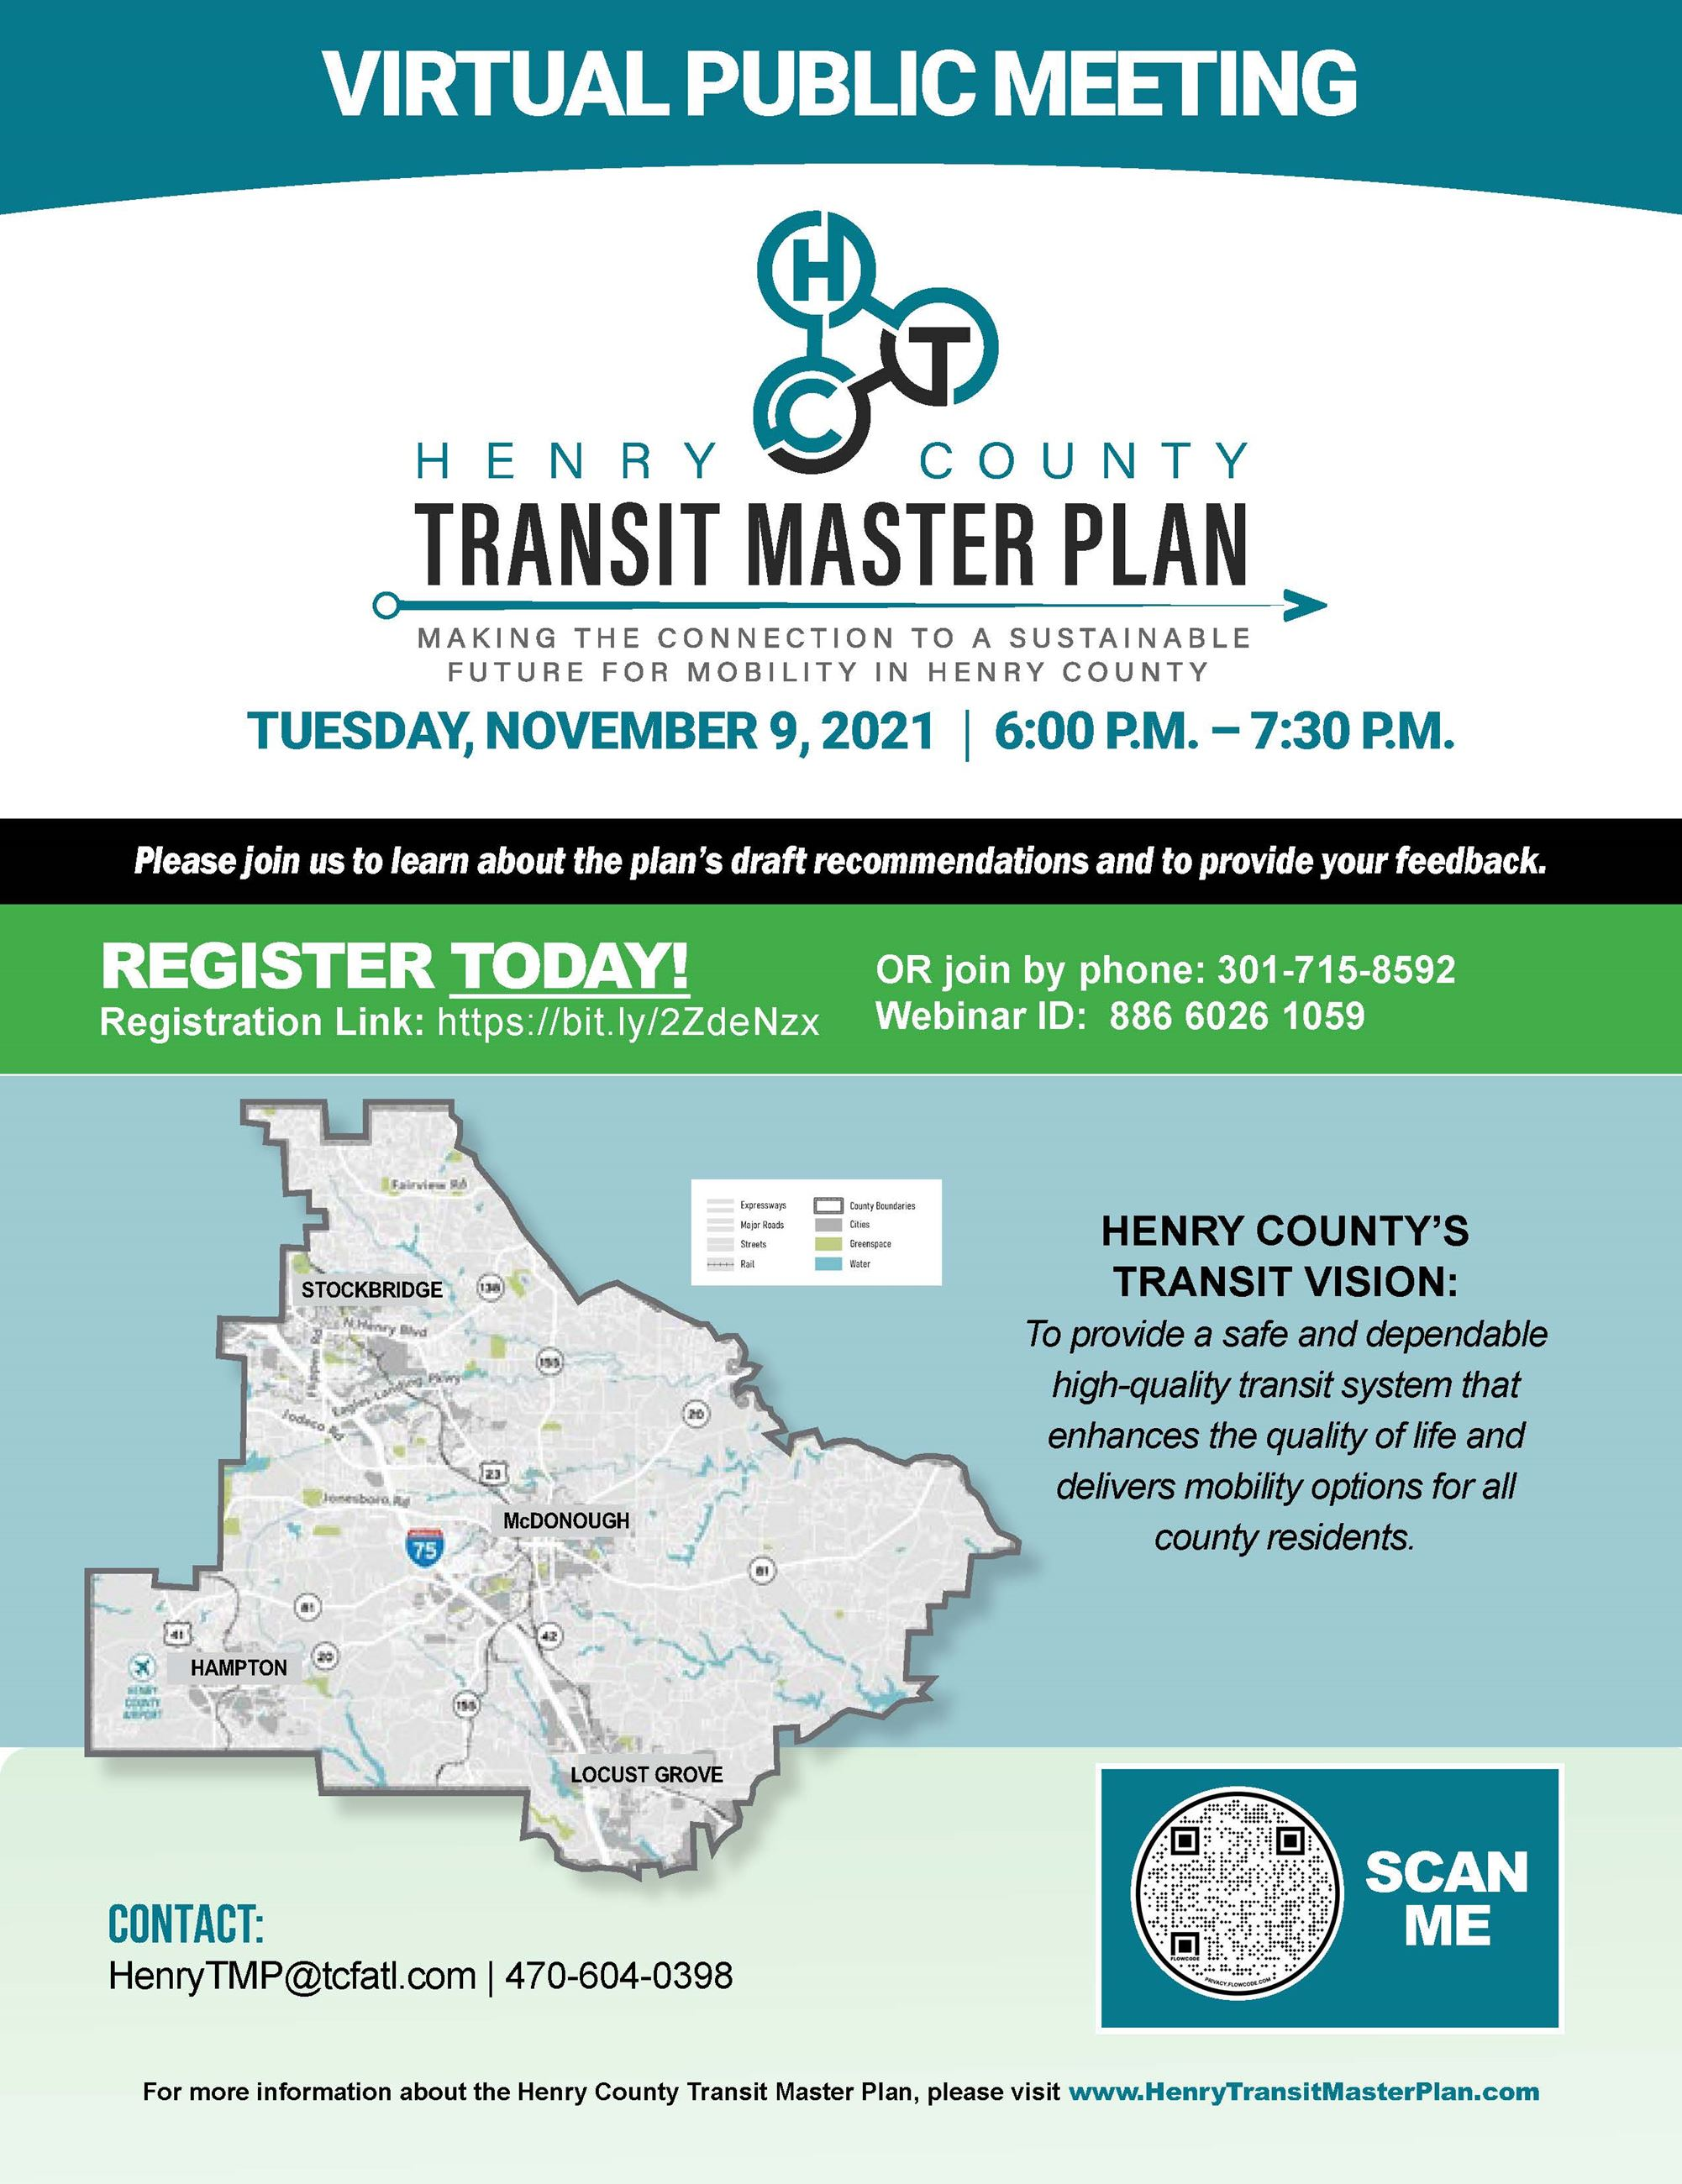 Henry County Transit Master Plan Flyer JPG for SOCIAL